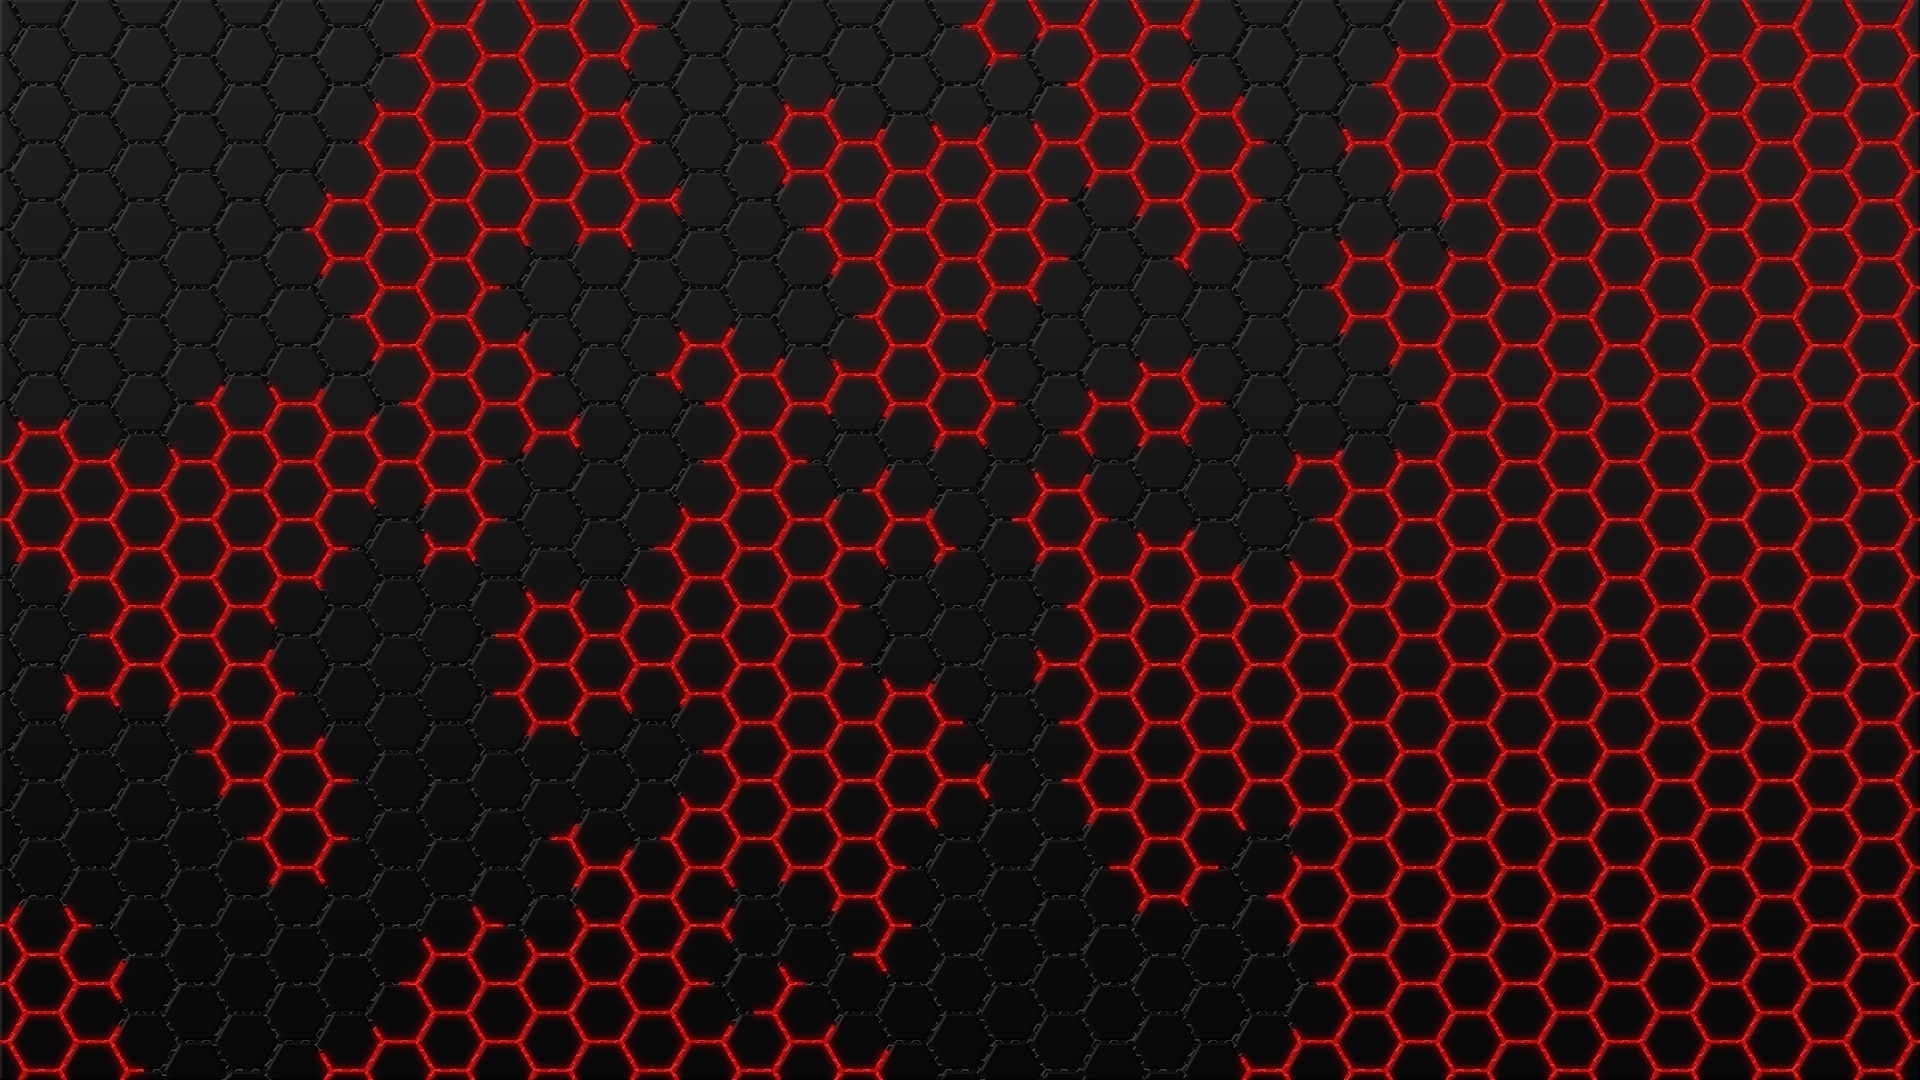 Red And Black 4k 3087098 Hd Wallpaper Backgrounds Download